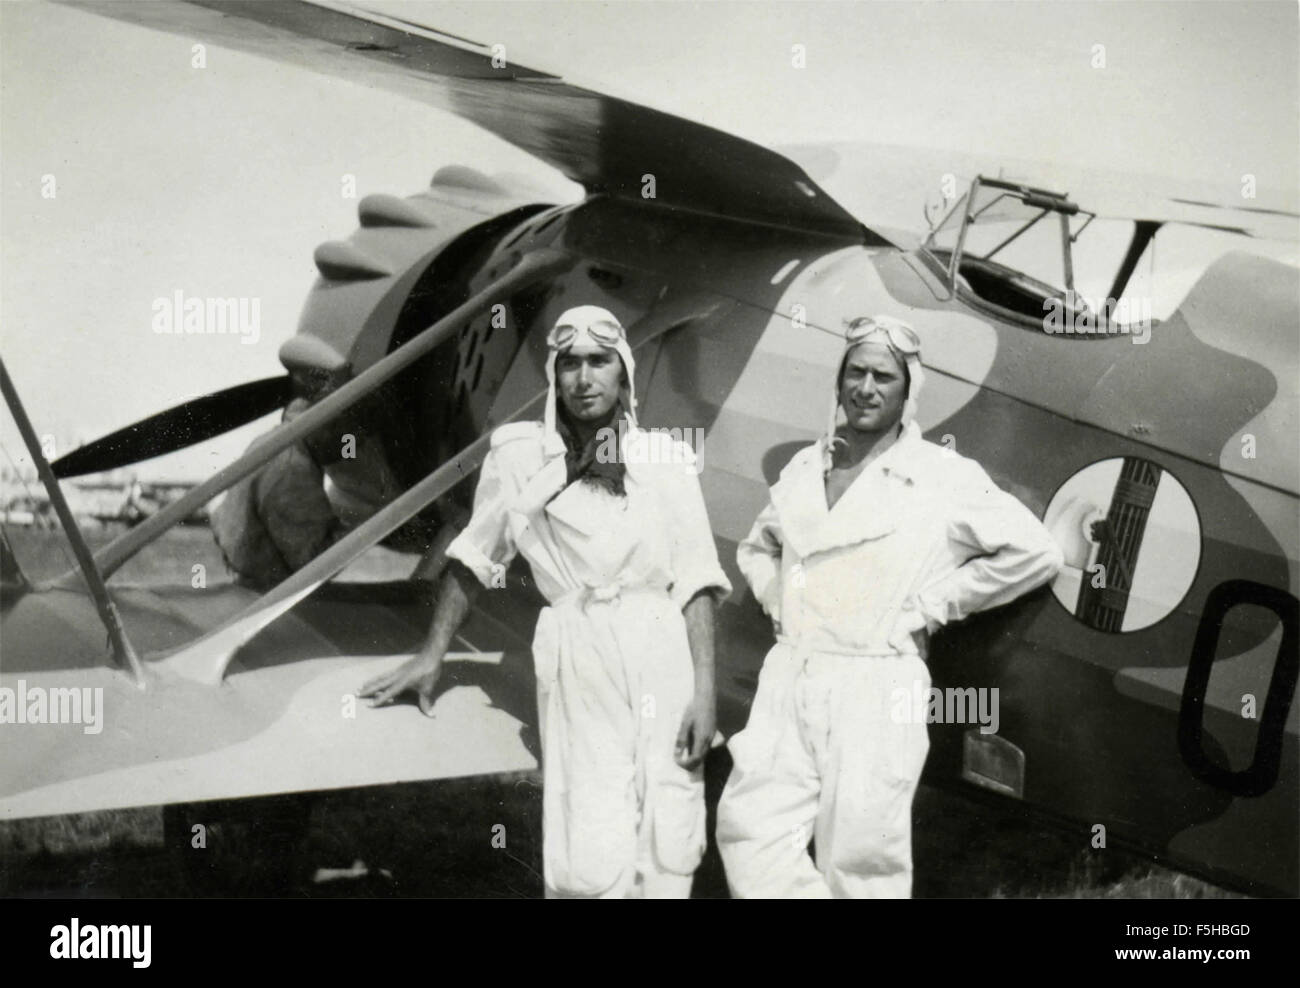 Two airmen in white suit next to a plane with an emblem of the beam, Italy - Stock Image